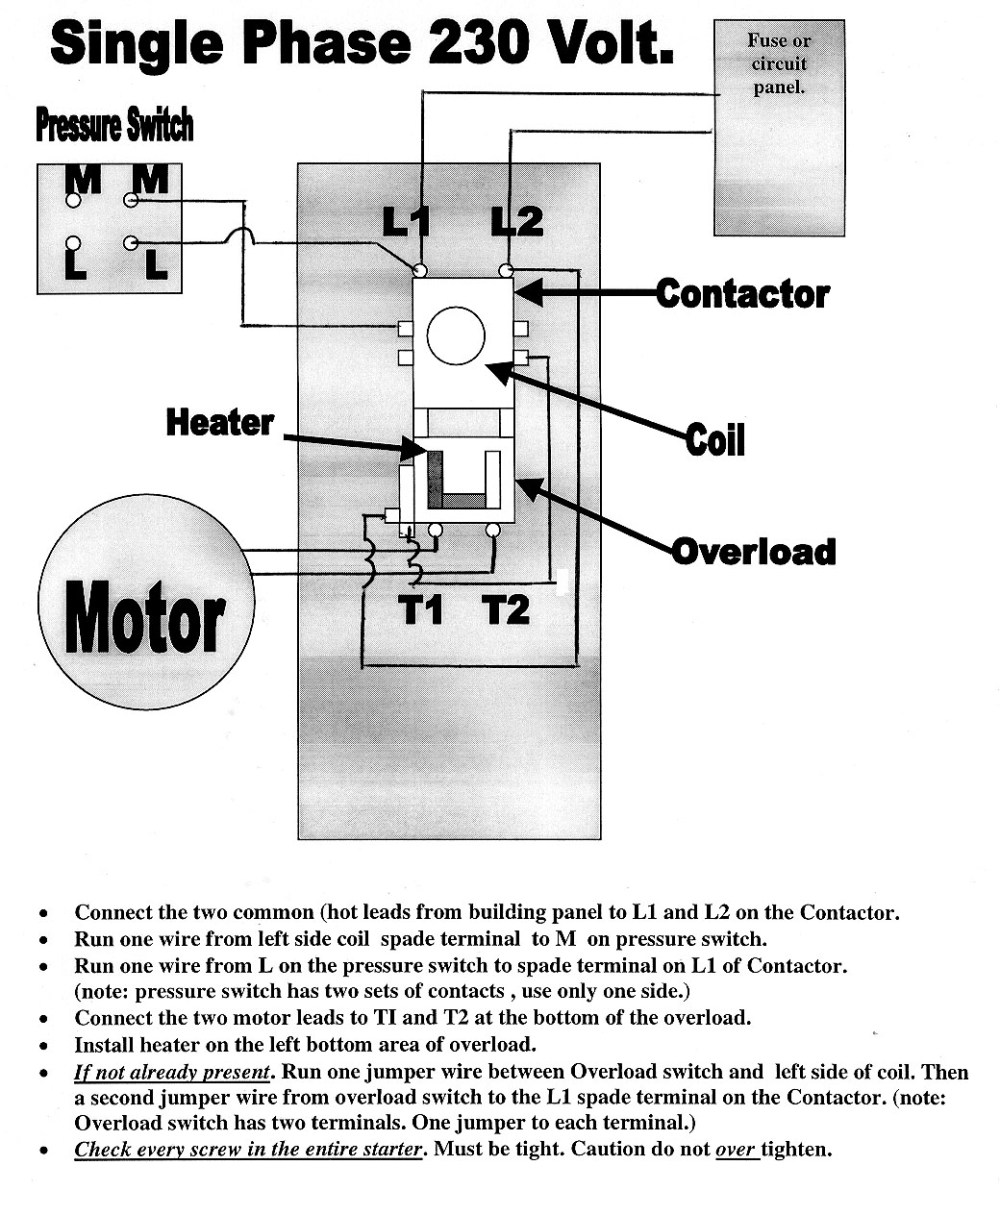 medium resolution of 230v 3 phase contactor wiring schematic diagram data 230v 3 phase contactor wiring